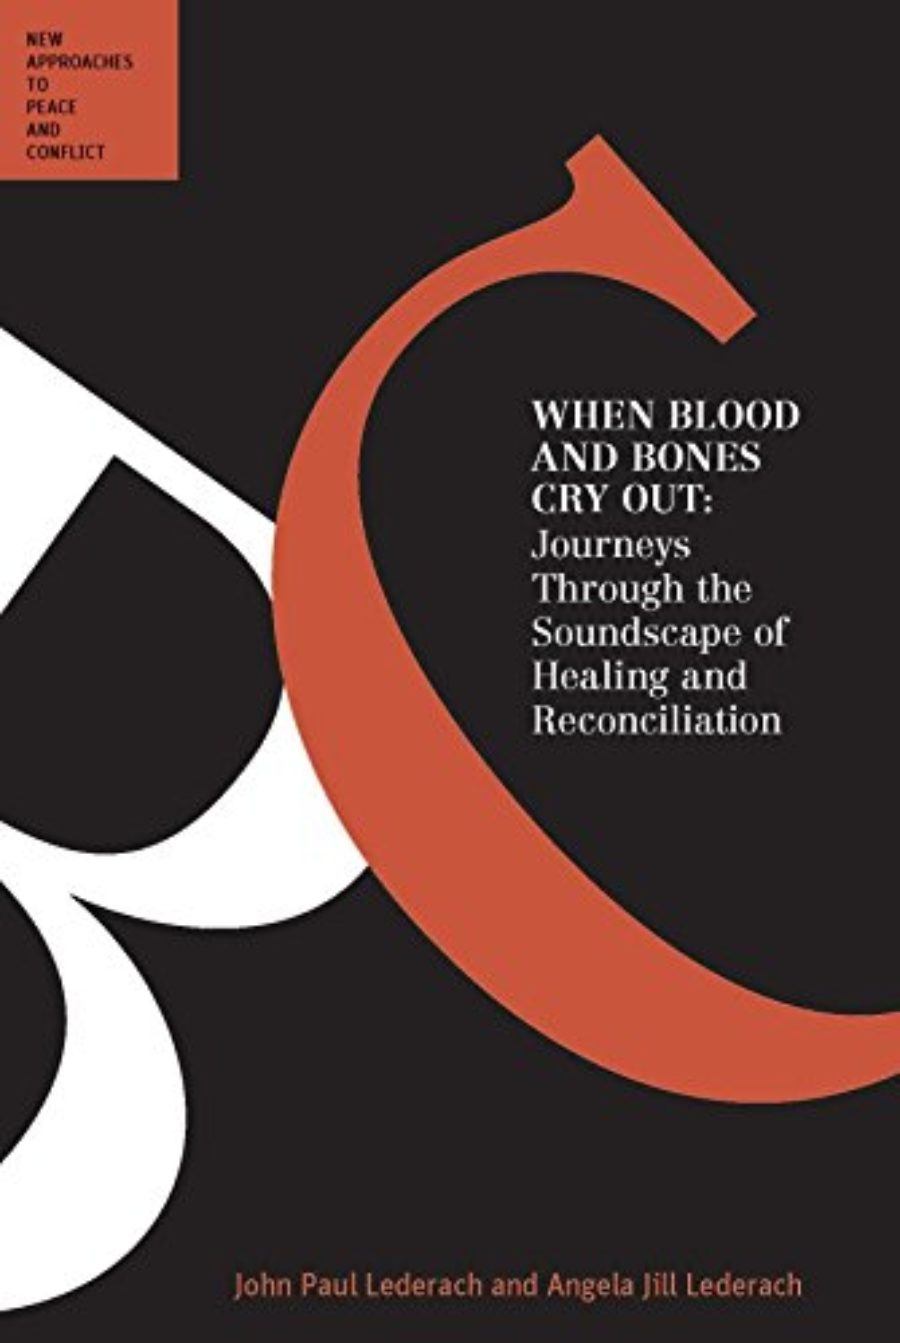 Cover of When Blood and Bones Cry Out: Journeys Through the Soundscape of Healing and Reconciliation